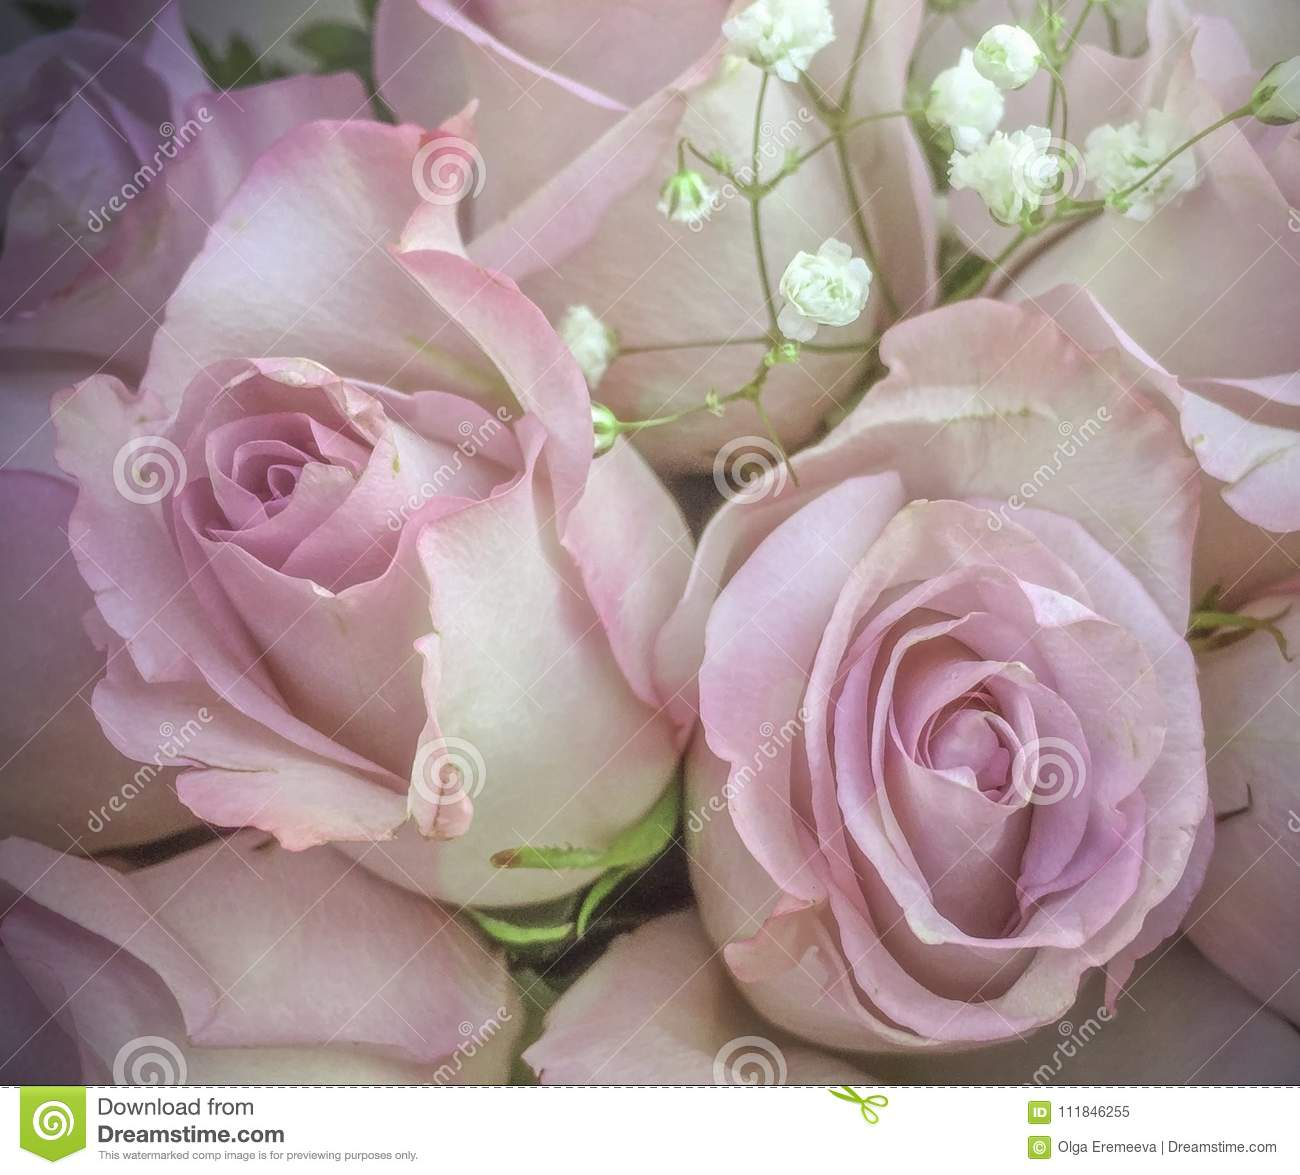 Delicate pink roses with small white flowers in bouquet stock image download delicate pink roses with small white flowers in bouquet stock image image of delicate izmirmasajfo